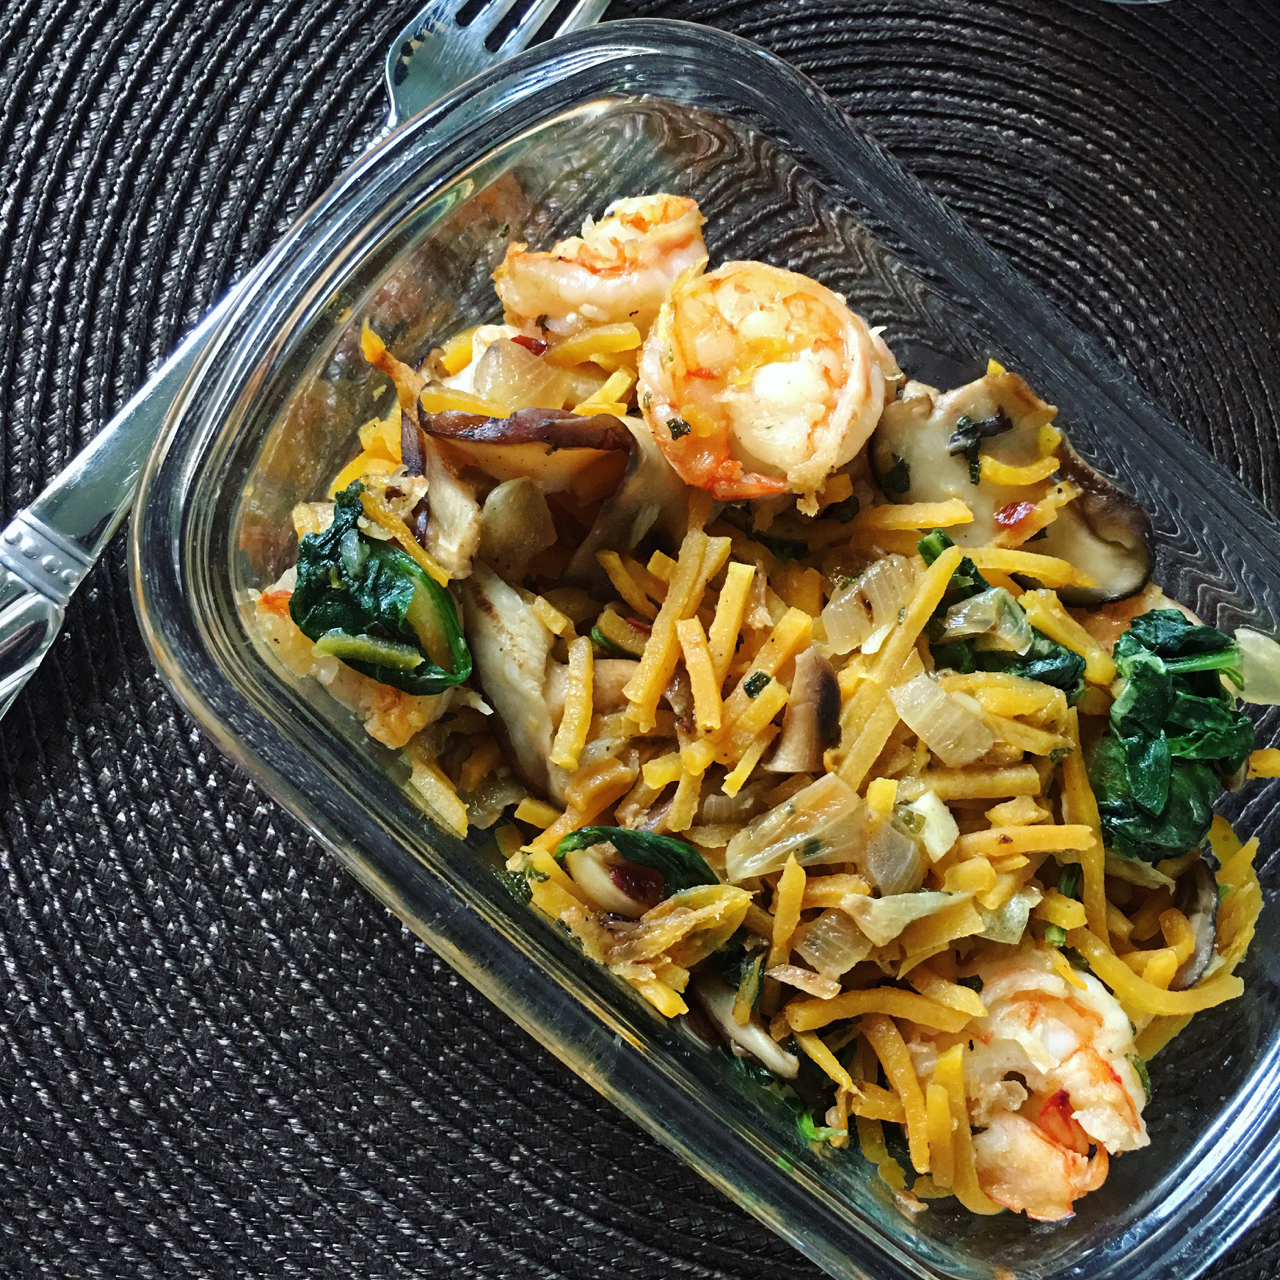 SAUTEED SHRIMP WITH BABY SPINACH, SHIITAKE MUSHROOMS AND BUTTERNUT SQUASH NOODLES IN A GARLIC AND SHALLOT SAUCE